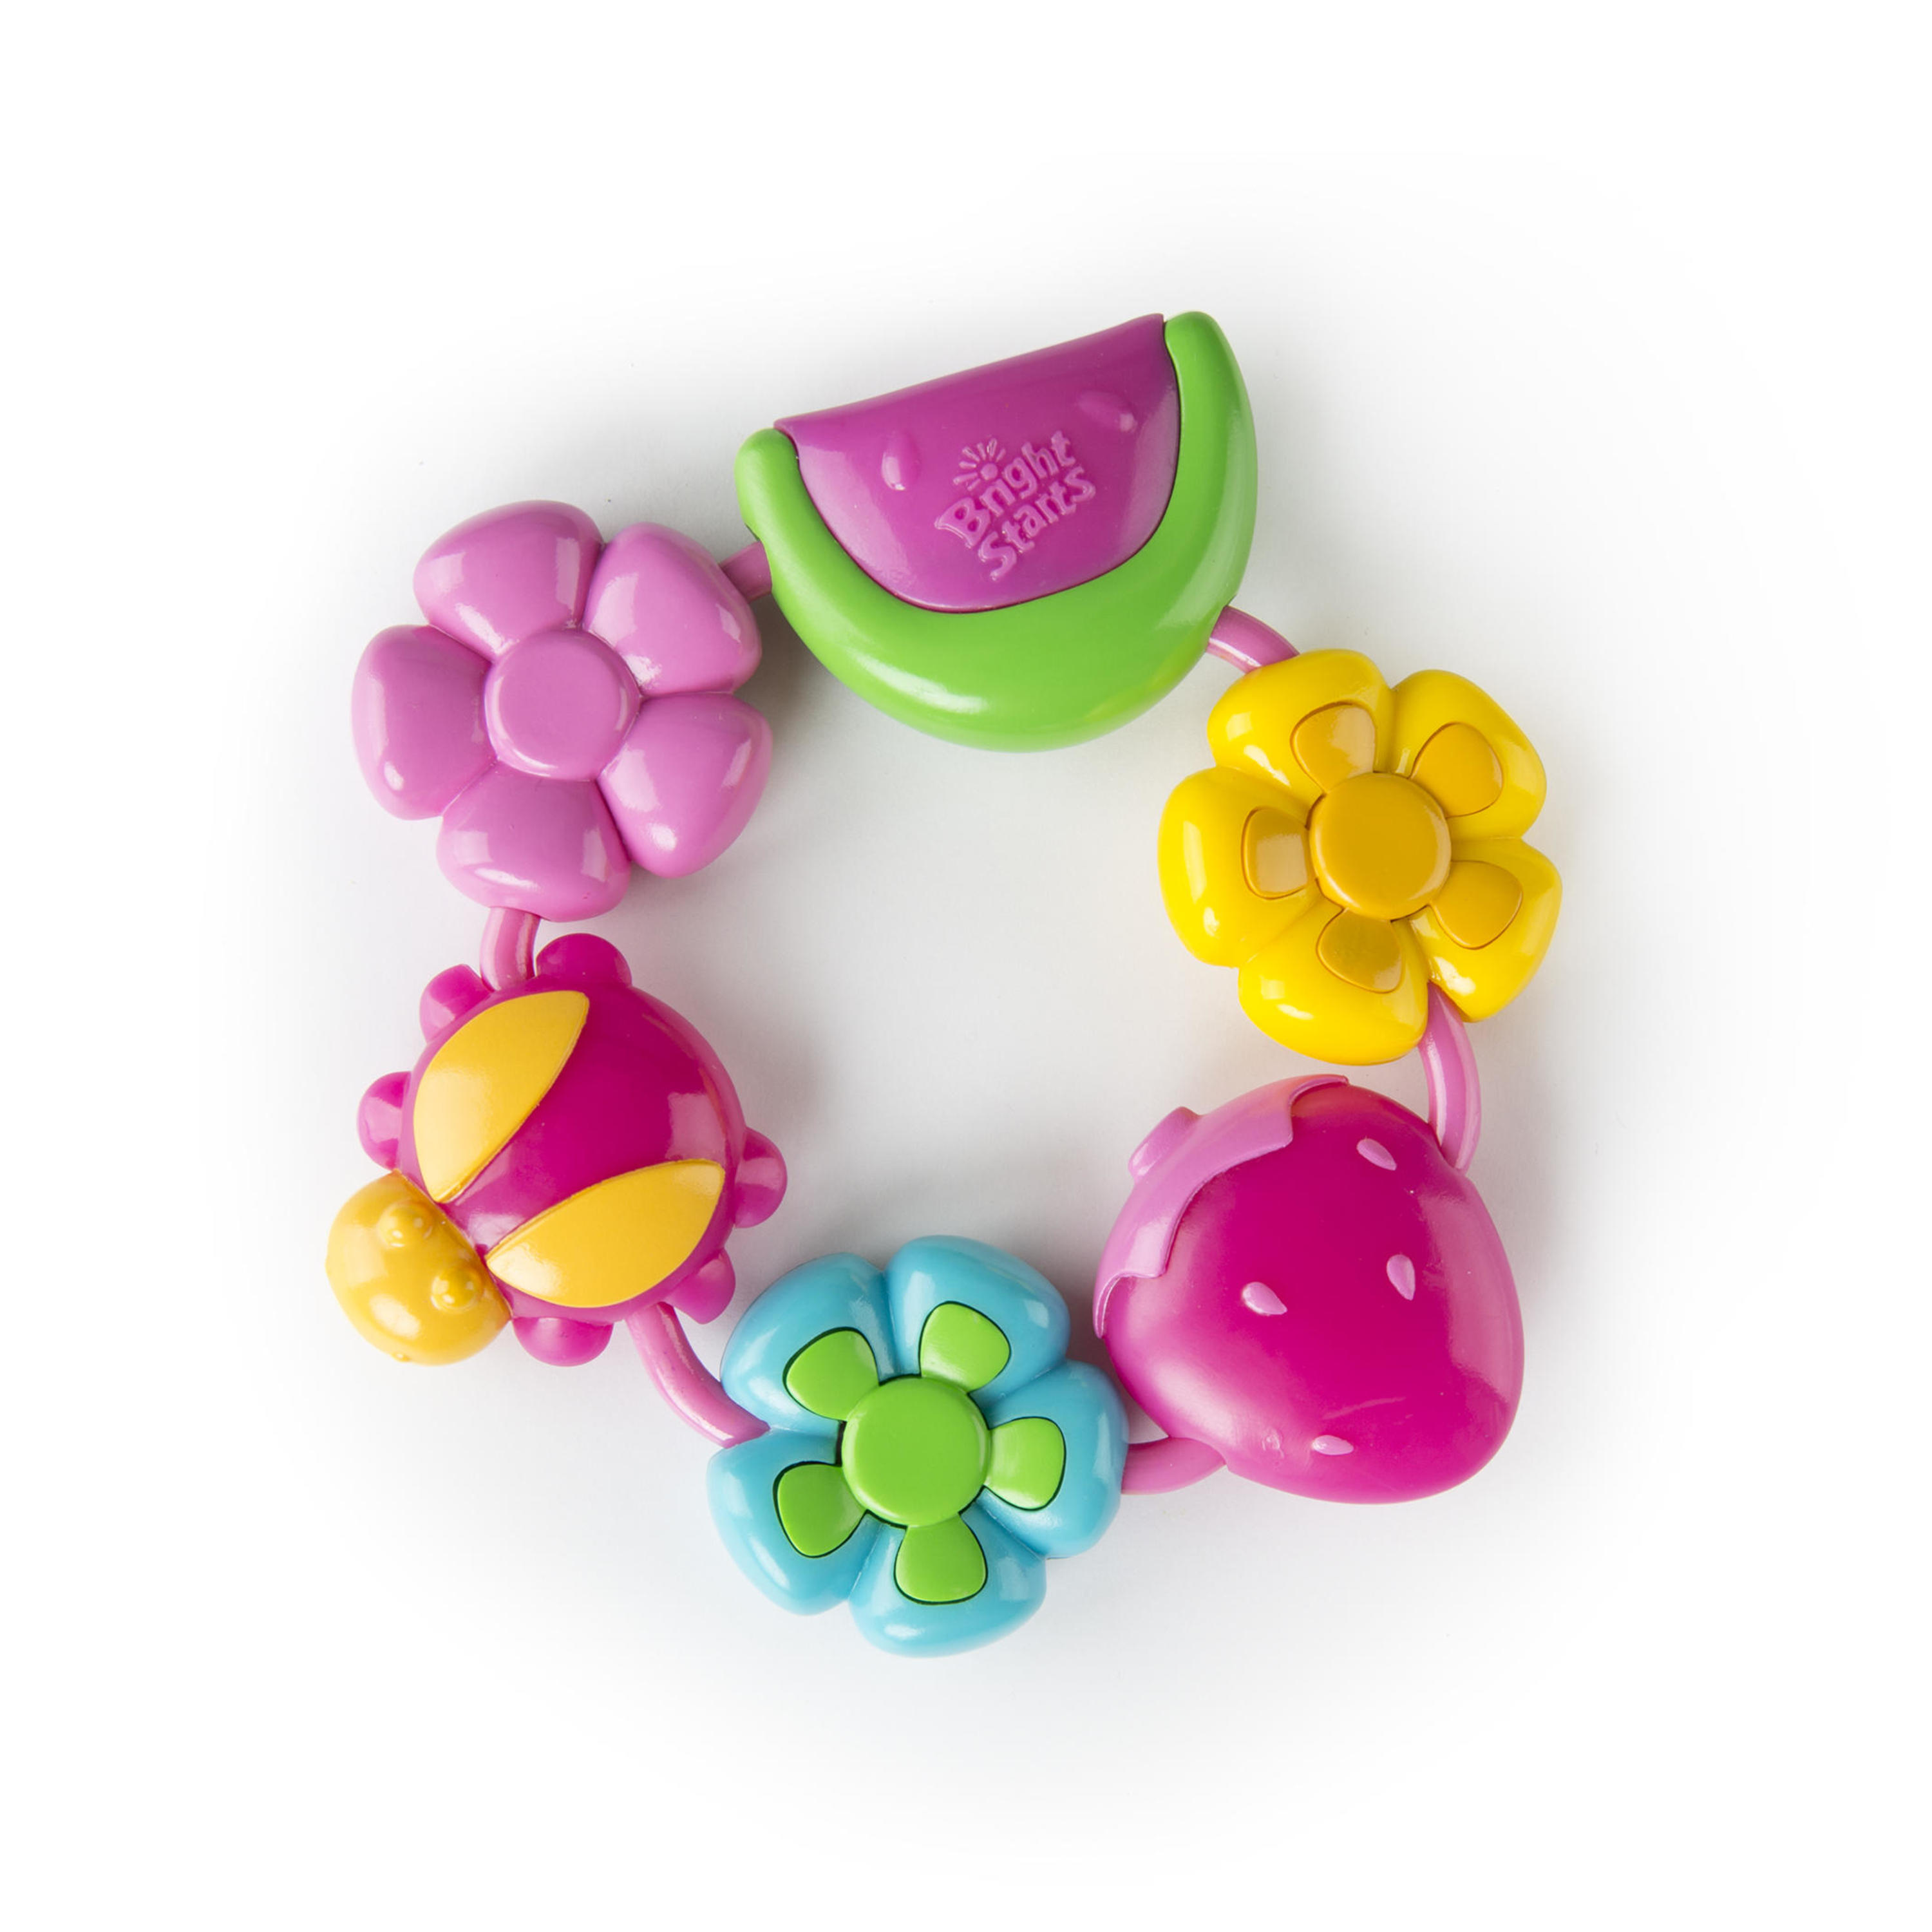 Bright Starts Buggie Bites Teether Teether Toy by Bright Starts